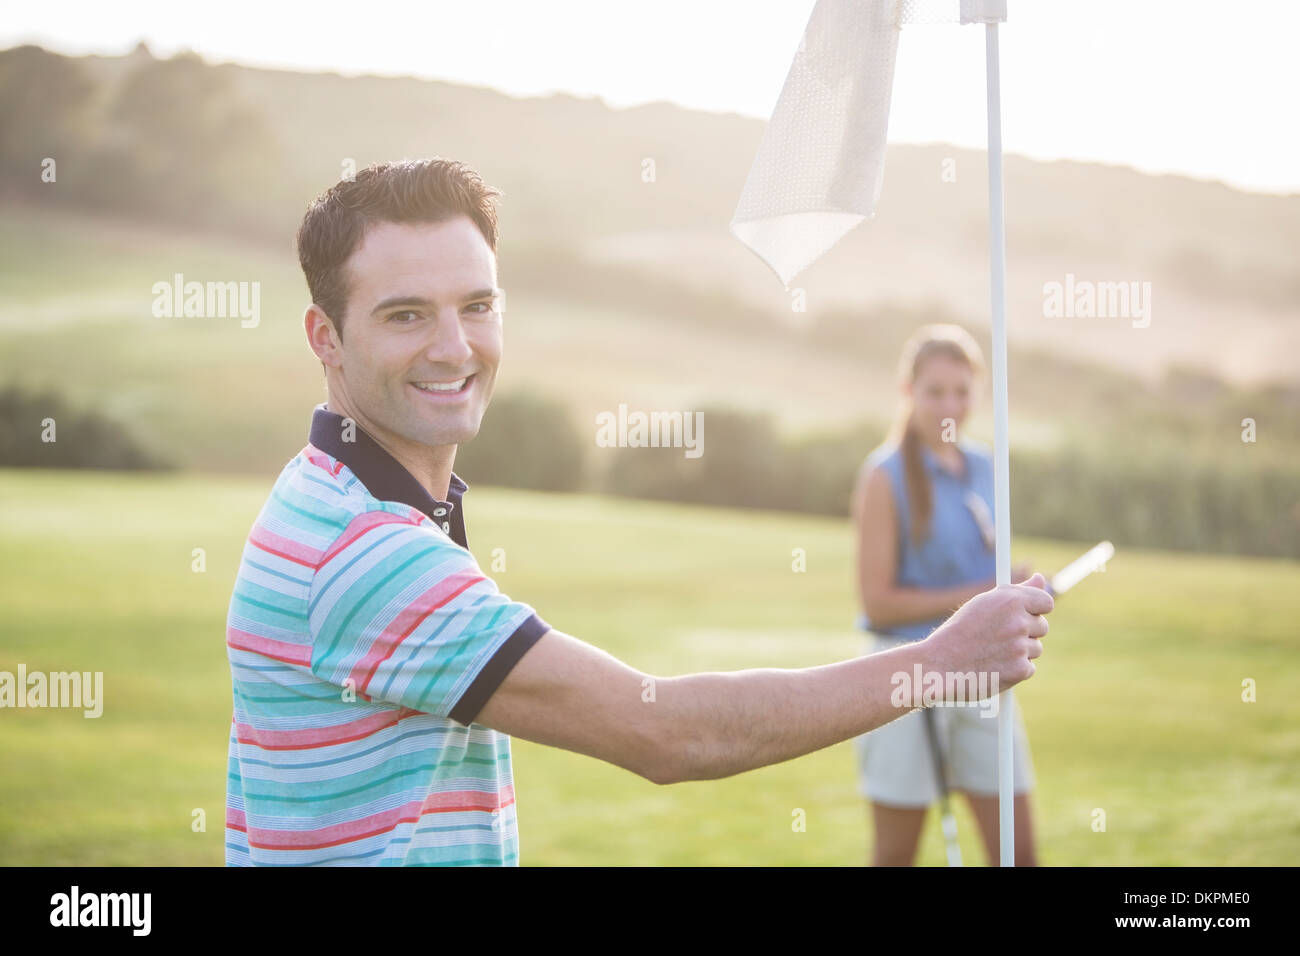 Couple on golf course Photo Stock